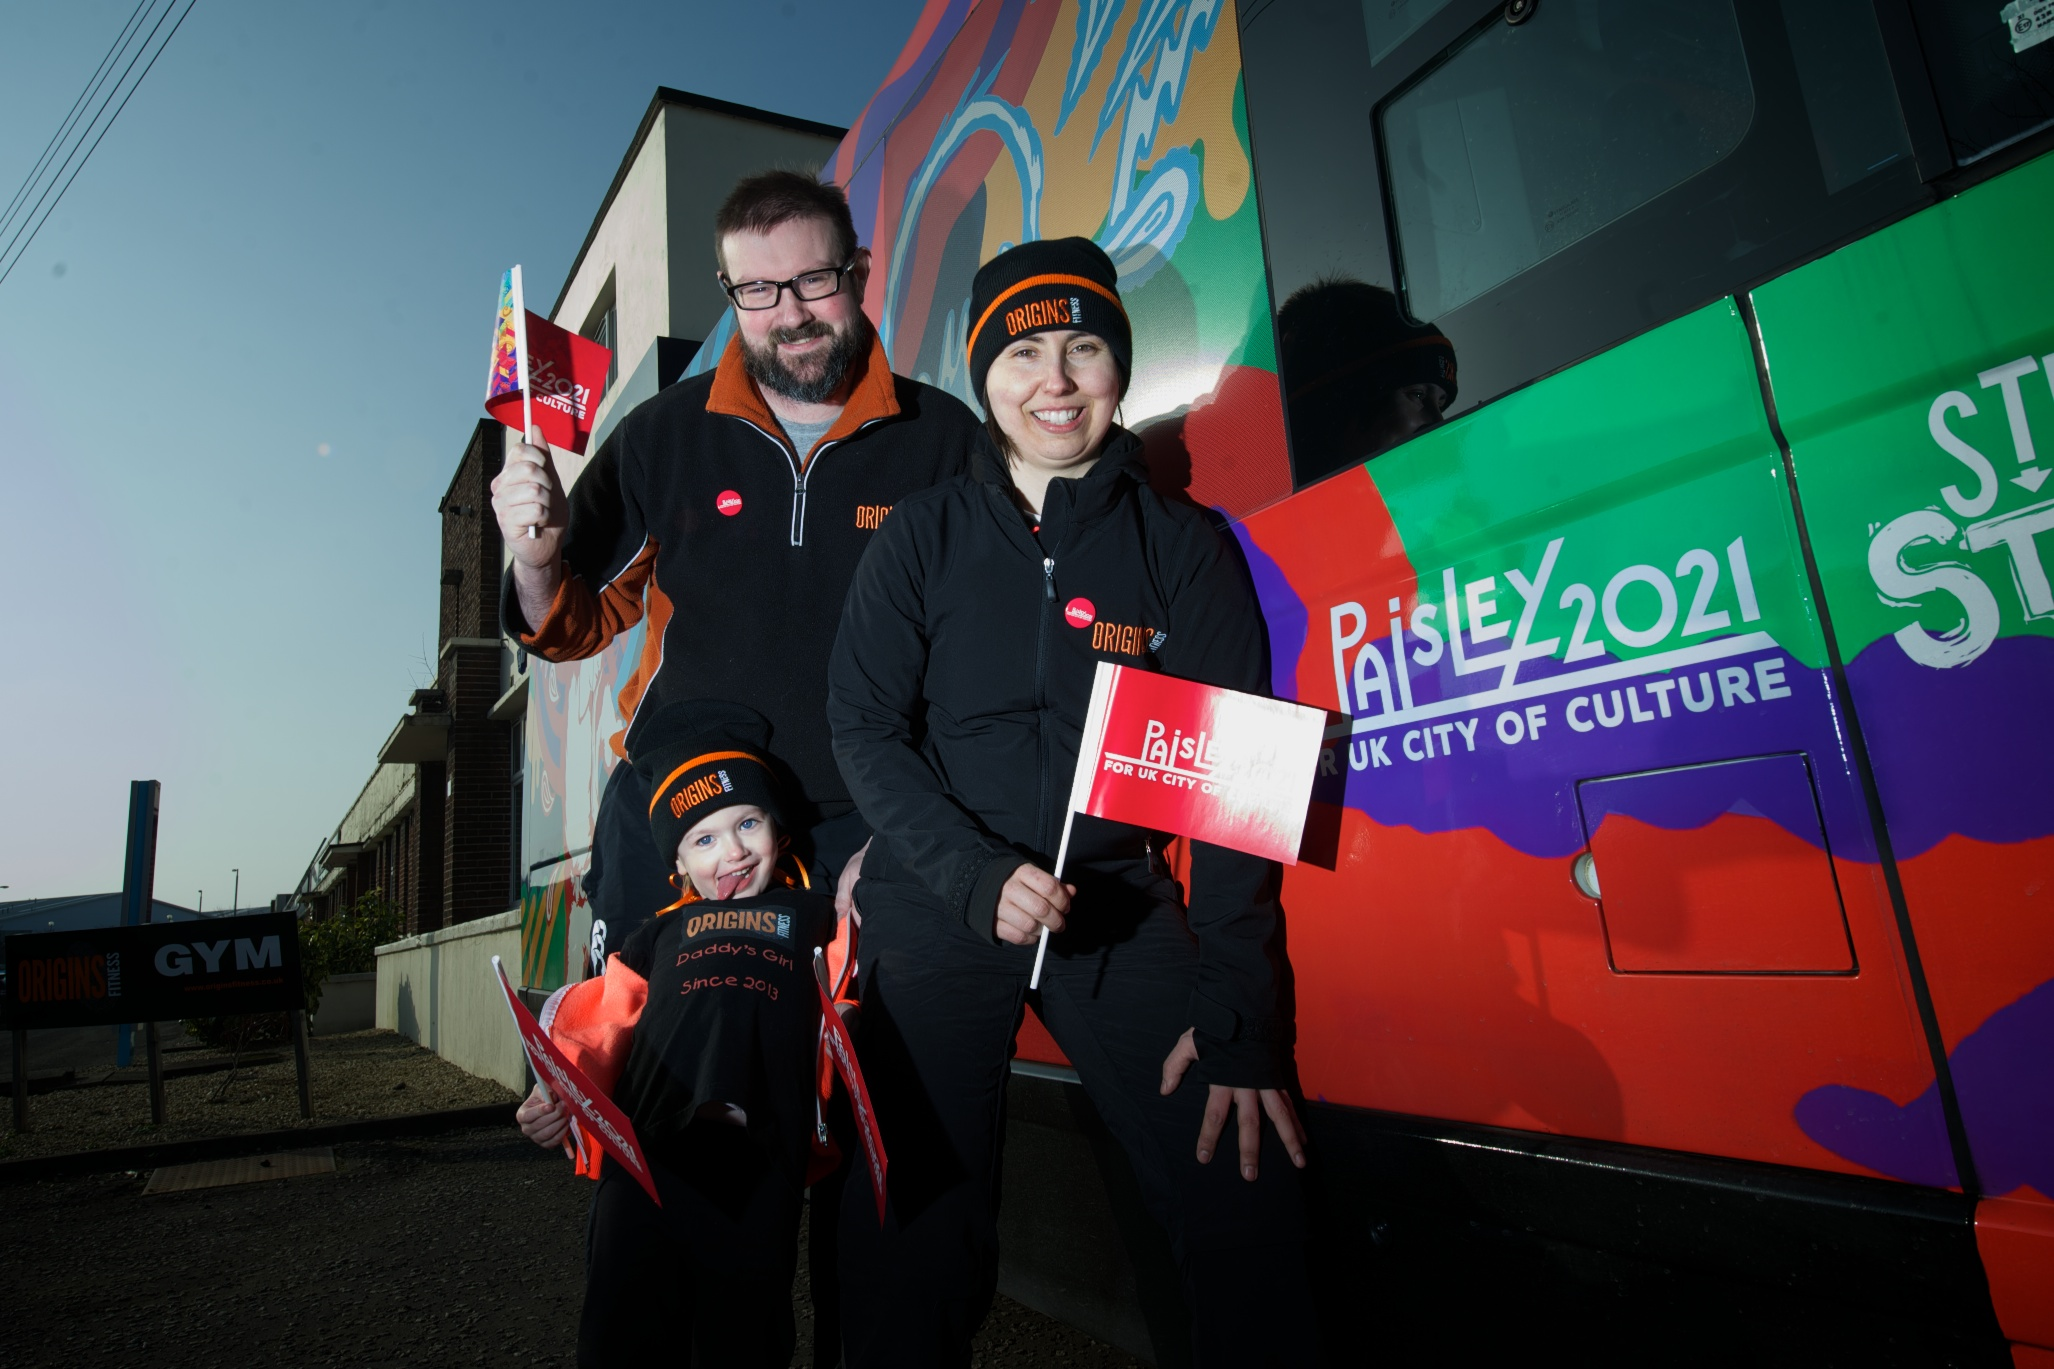 Origins Gym offer free membership to Paisley 2021 business backers